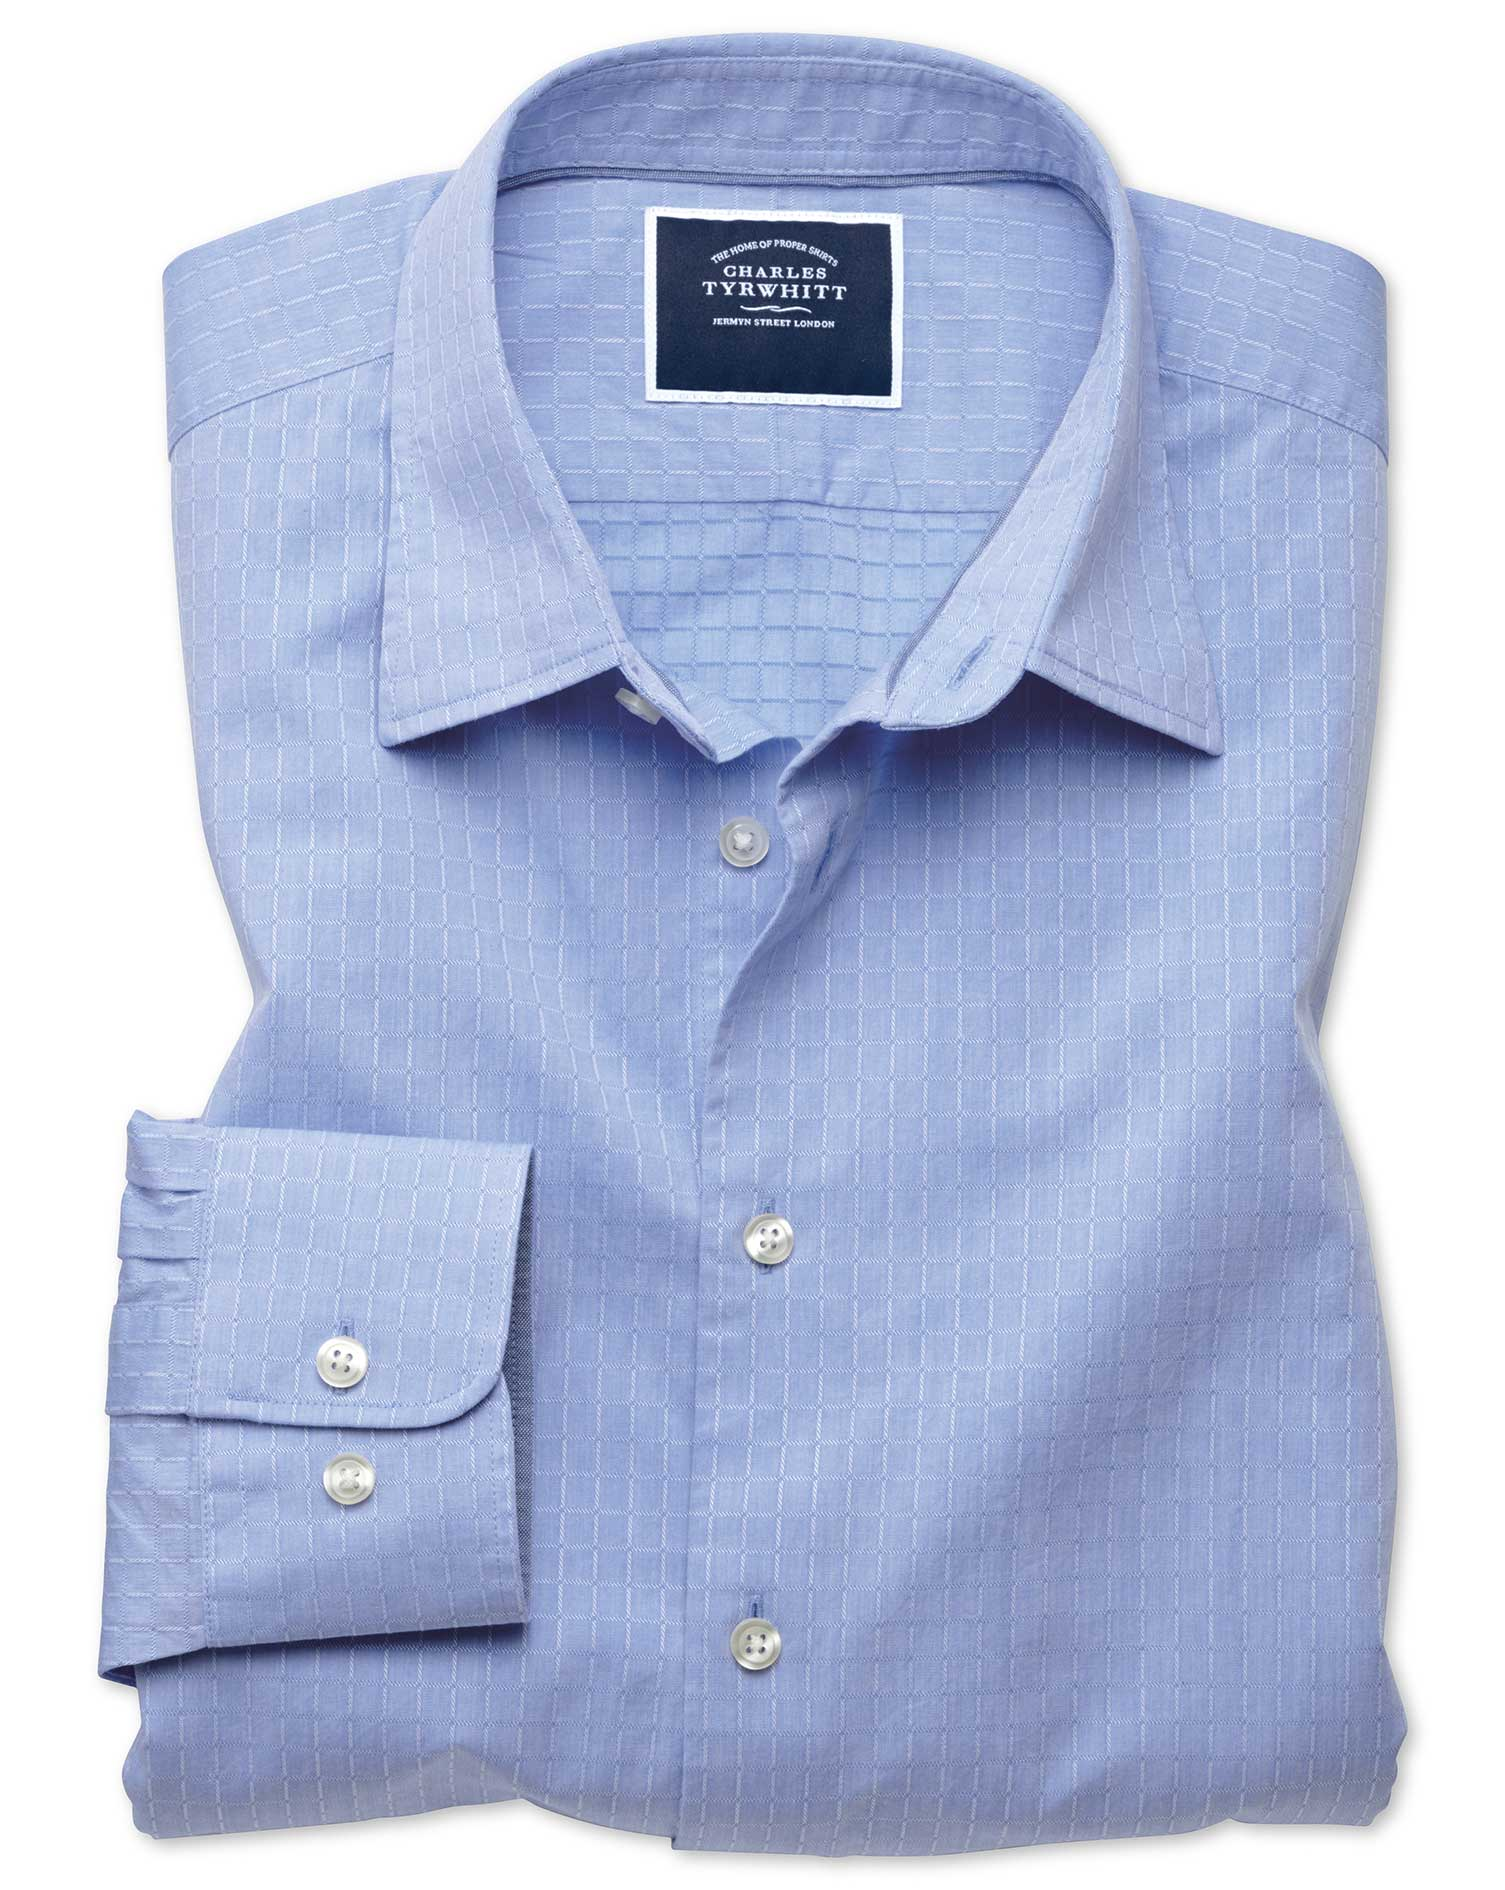 Slim Fit Blue Square Soft Texture Cotton Shirt Single Cuff Size Small by Charles Tyrwhitt